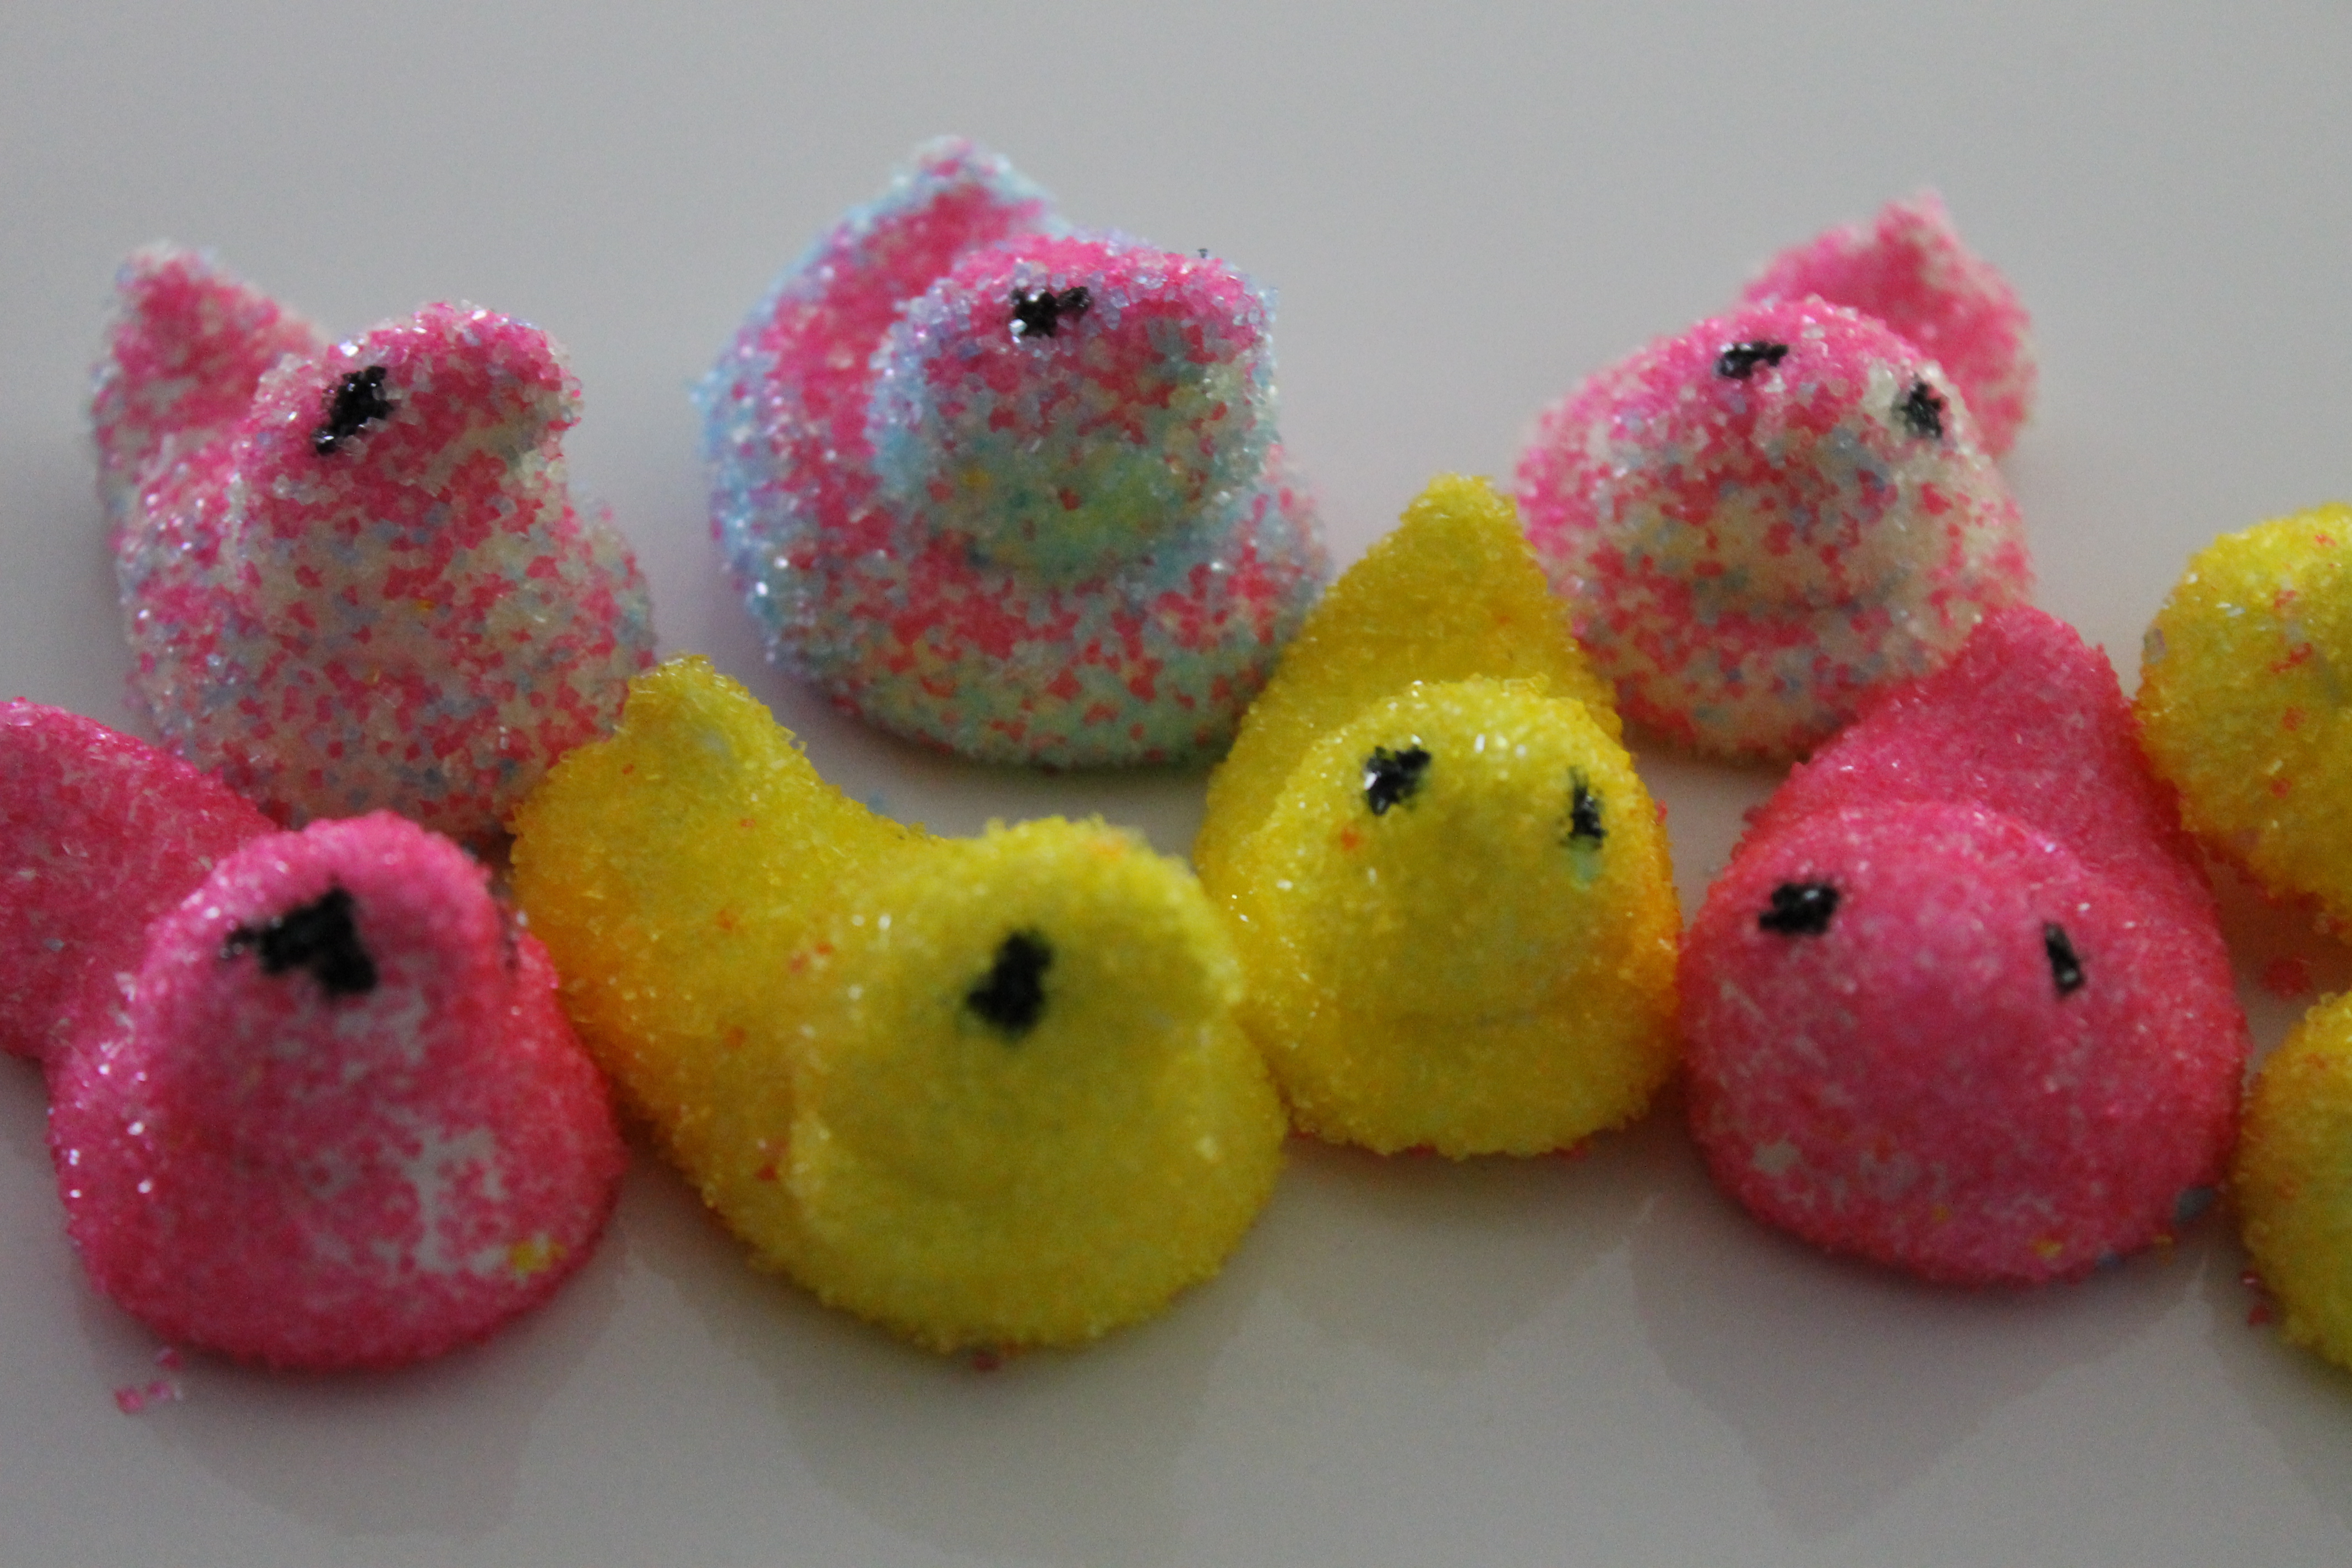 To celebrate this beautiful Easter weekend, I attempted to make homemade peeps again. My first attempt was last spring. Visions of beautiful, sparkling ...